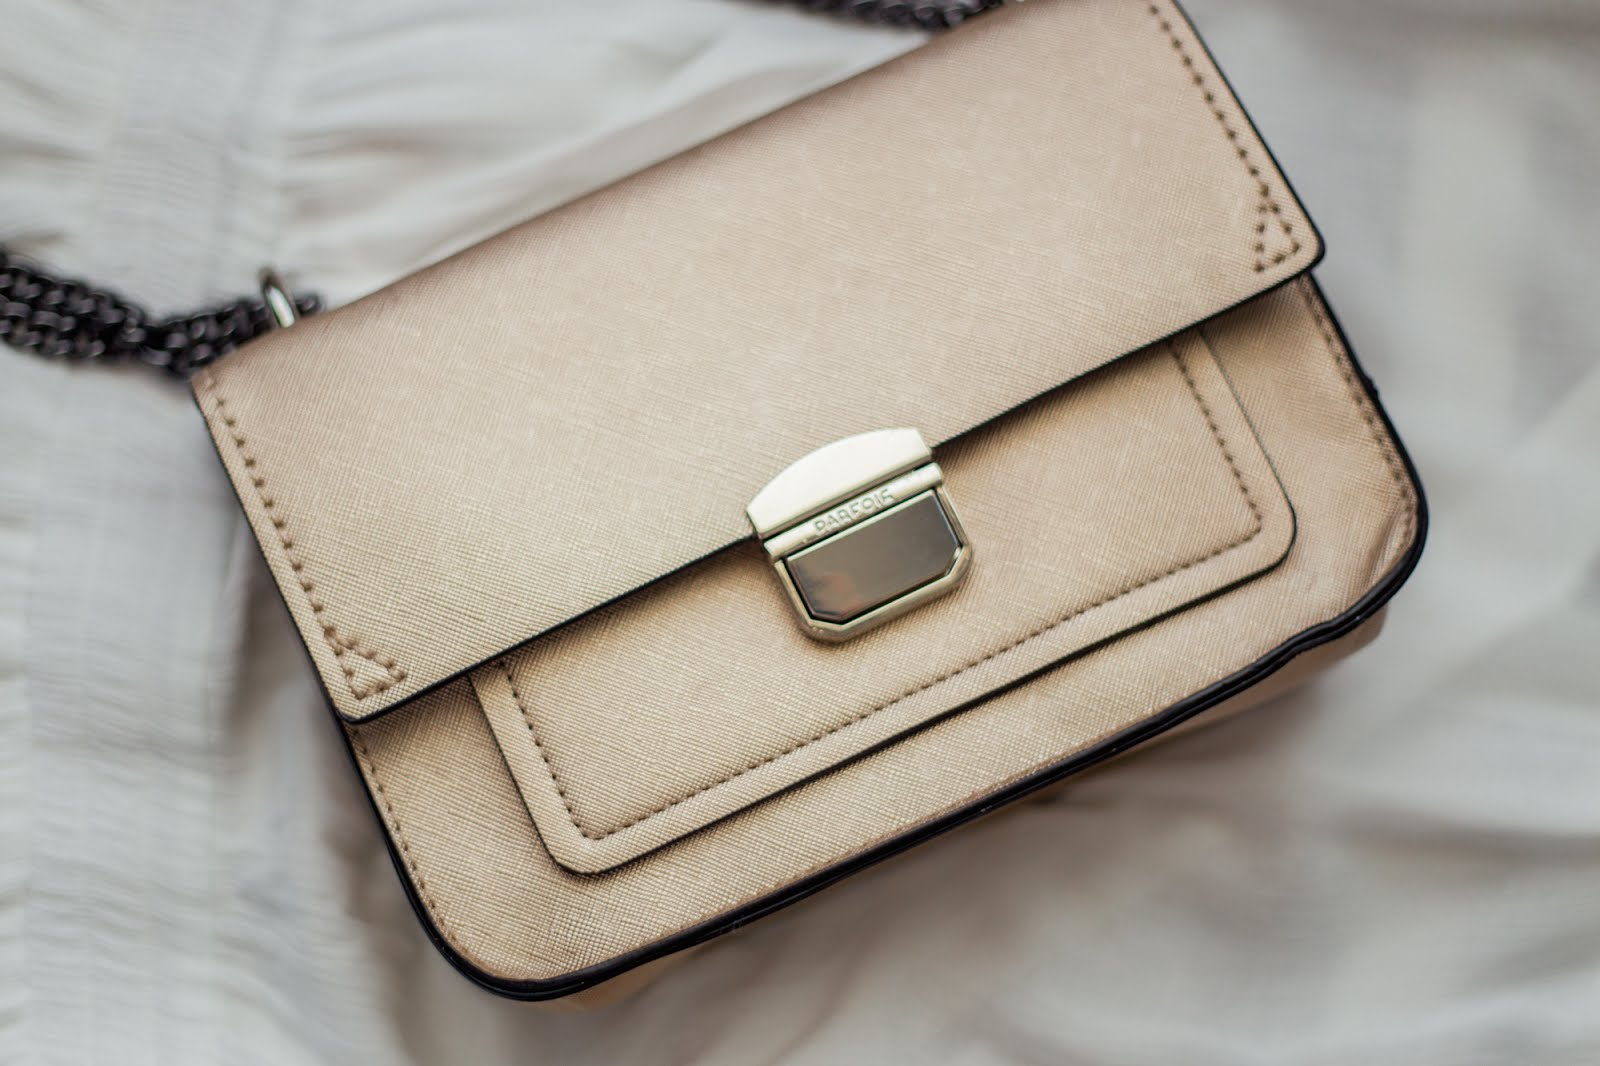 A perfect gold shoulder bag from Parfois to match with the elegance of the festive season.